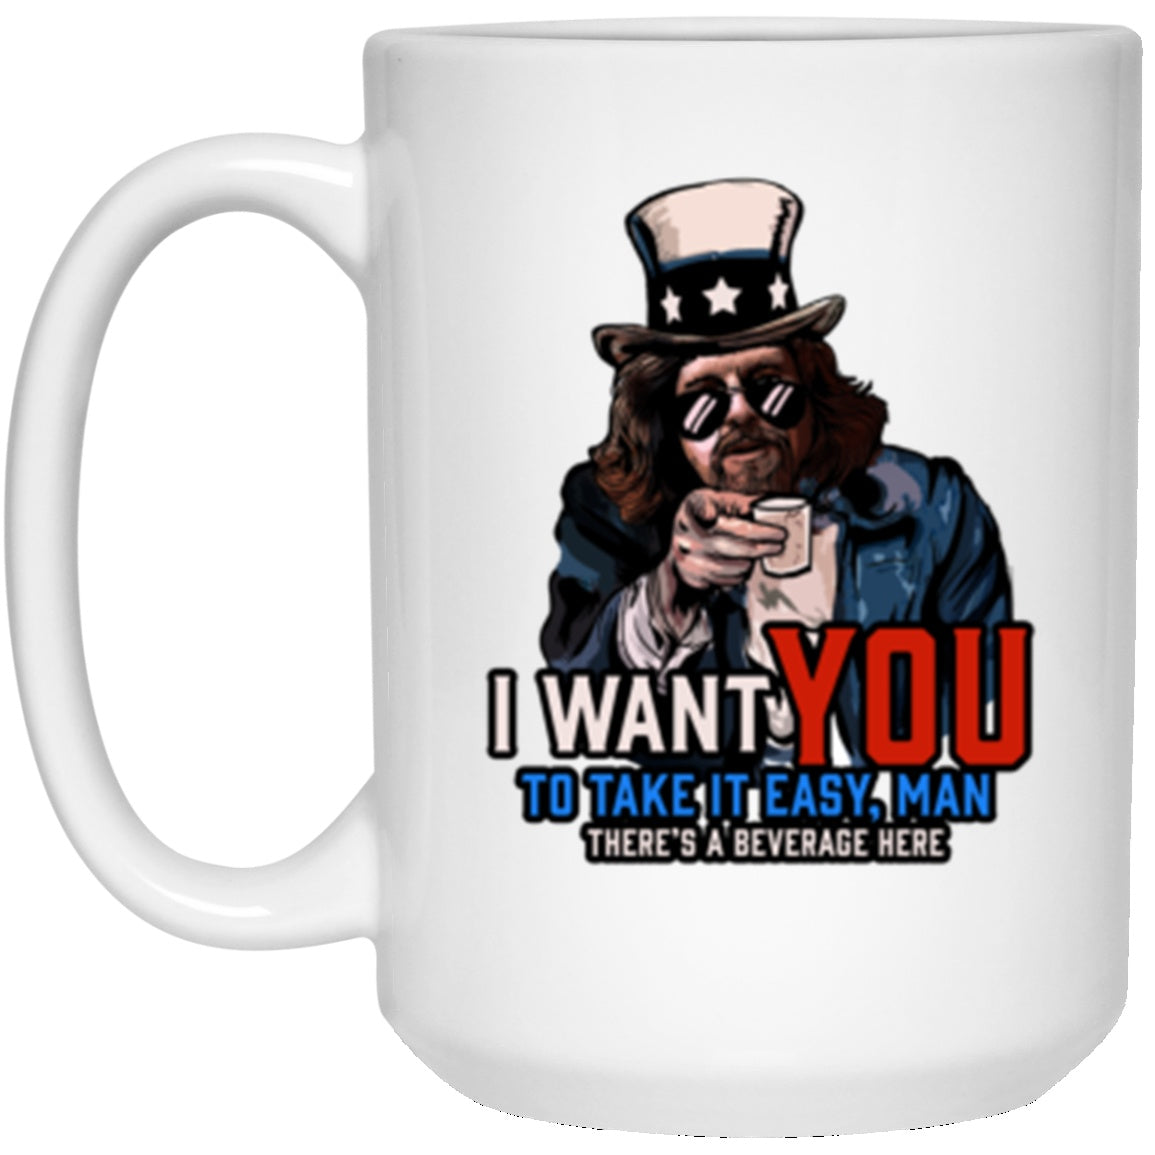 Drinkware - Take It Easy Man White Mug 15oz (2-sided)